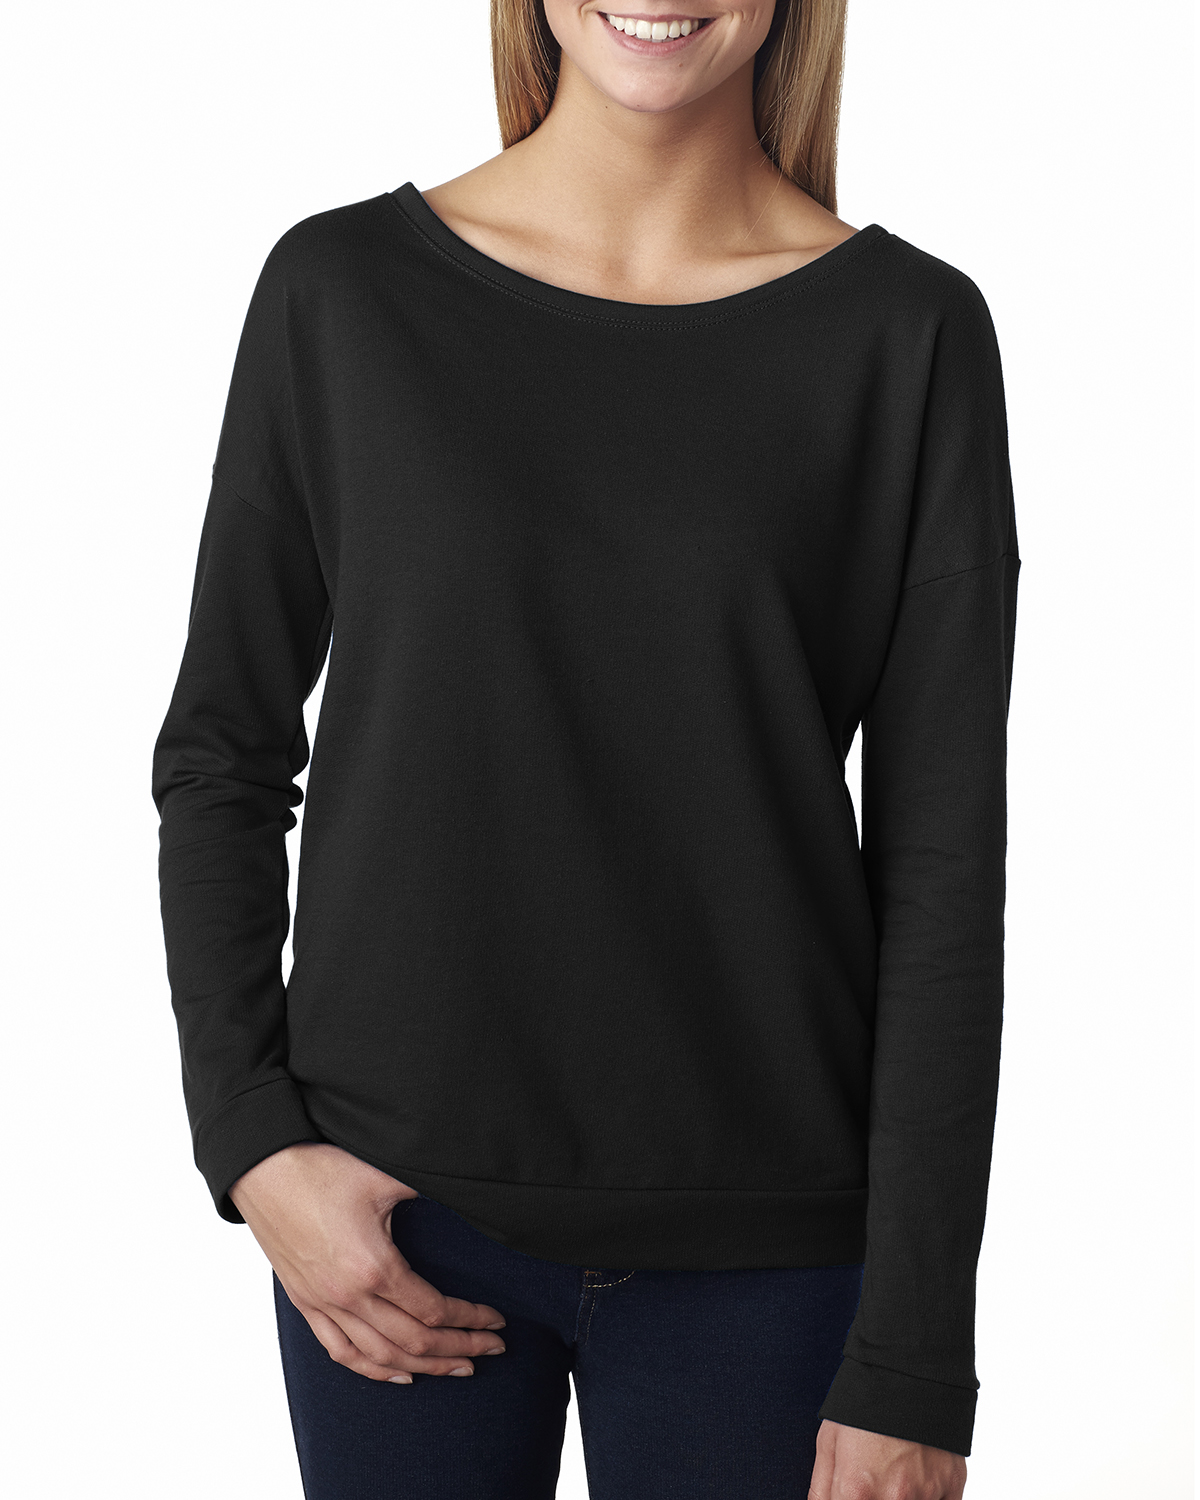 Next Level - 6931 The Terry Long-Sleeve Scoop